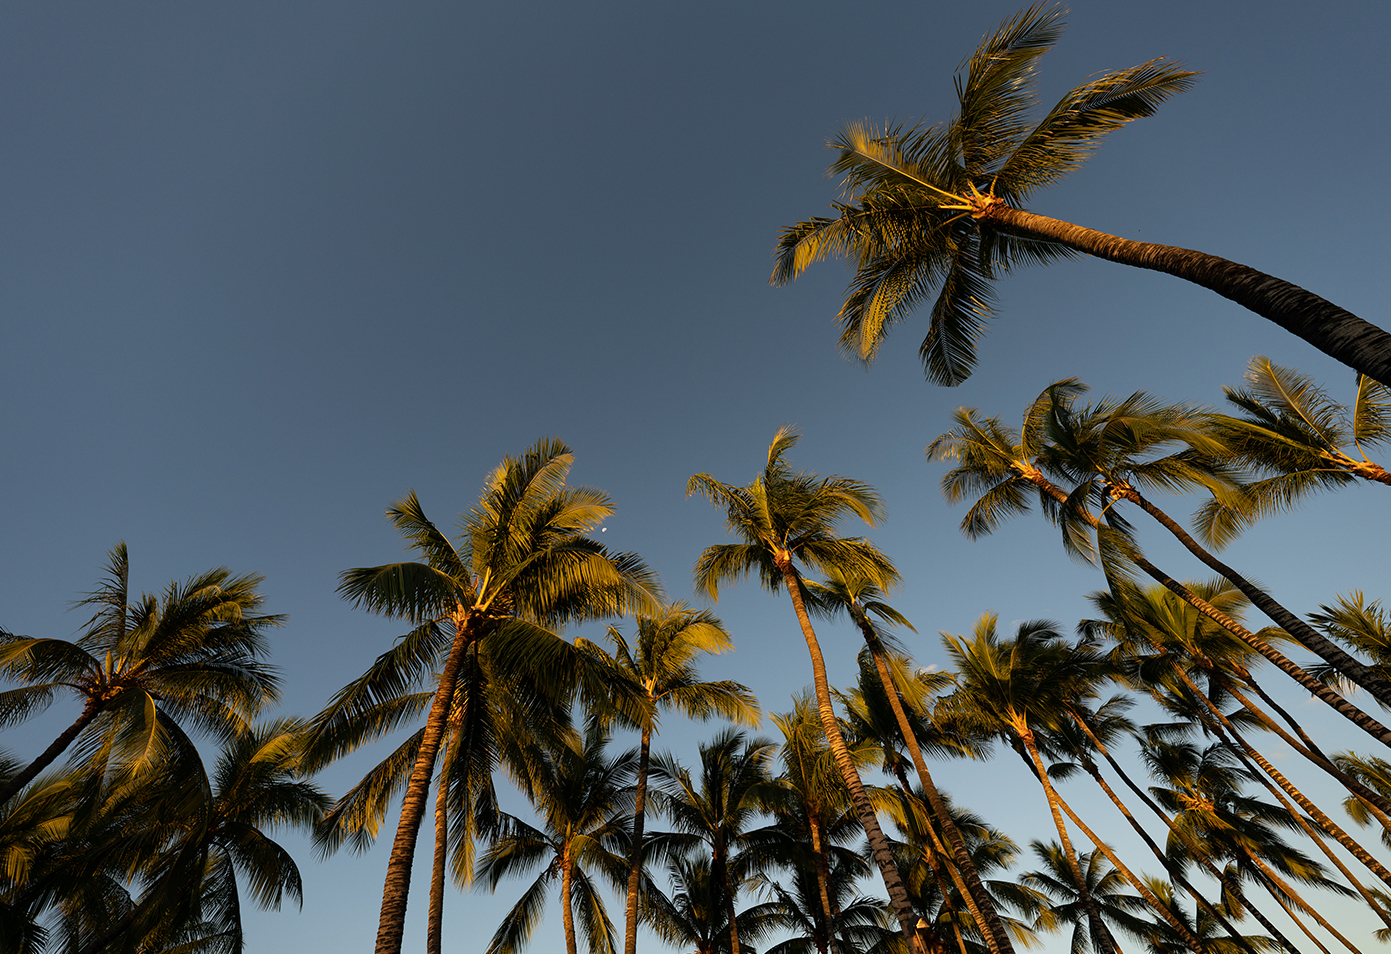 Palm trees at Fairmont Orchid, Hawaii